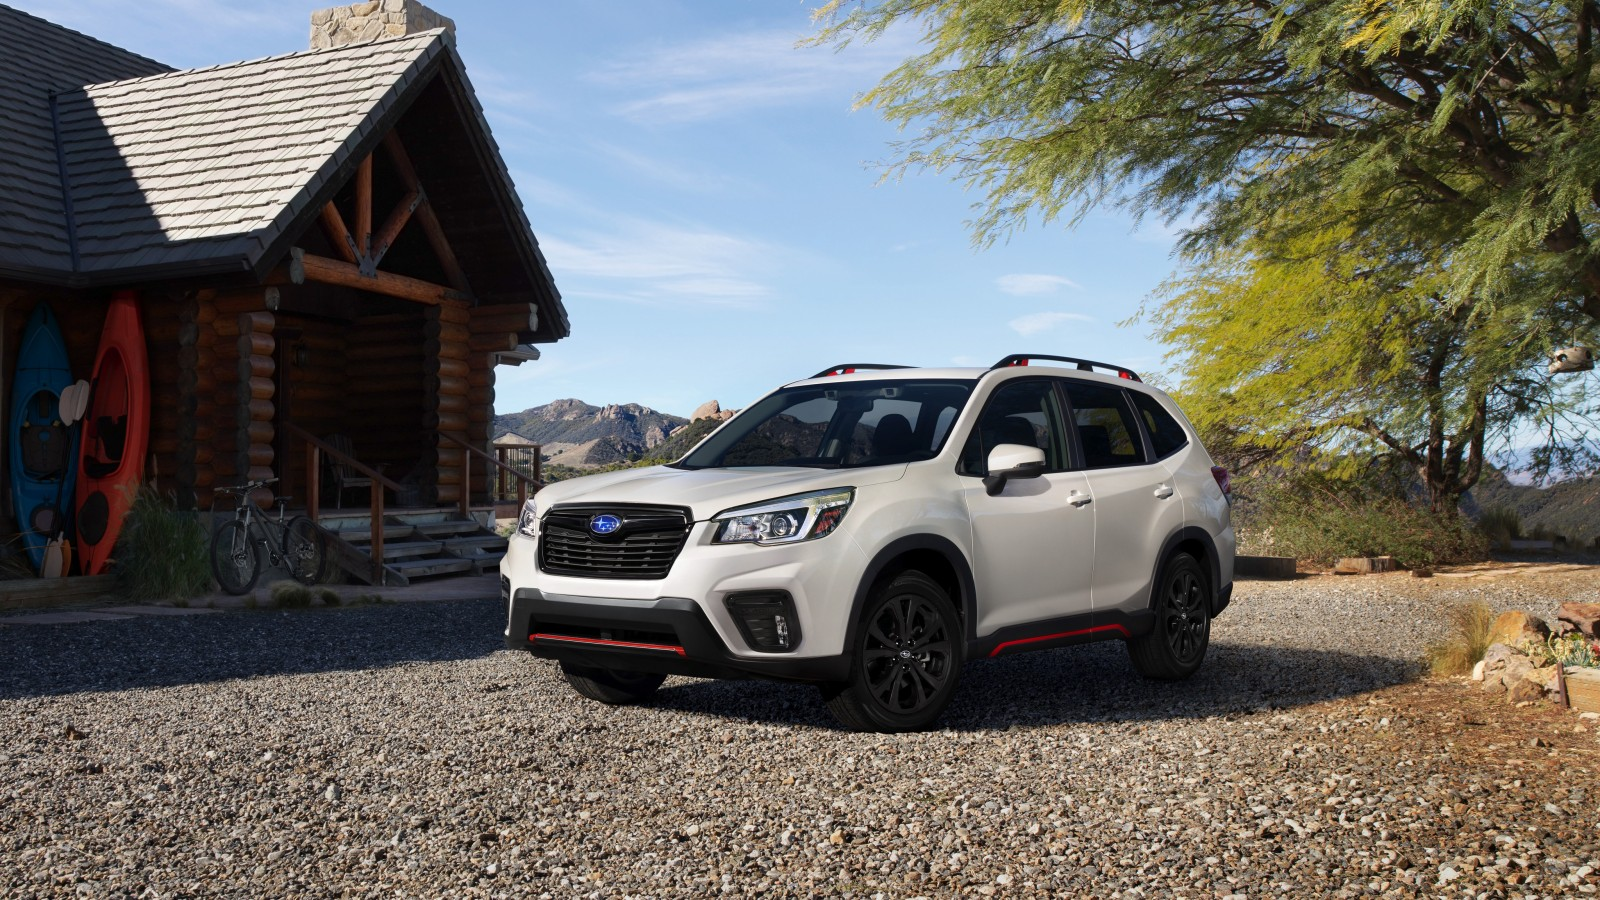 2019 Subaru Forester Sport 4K Wallpaper | HD Car Wallpapers | ID #10114